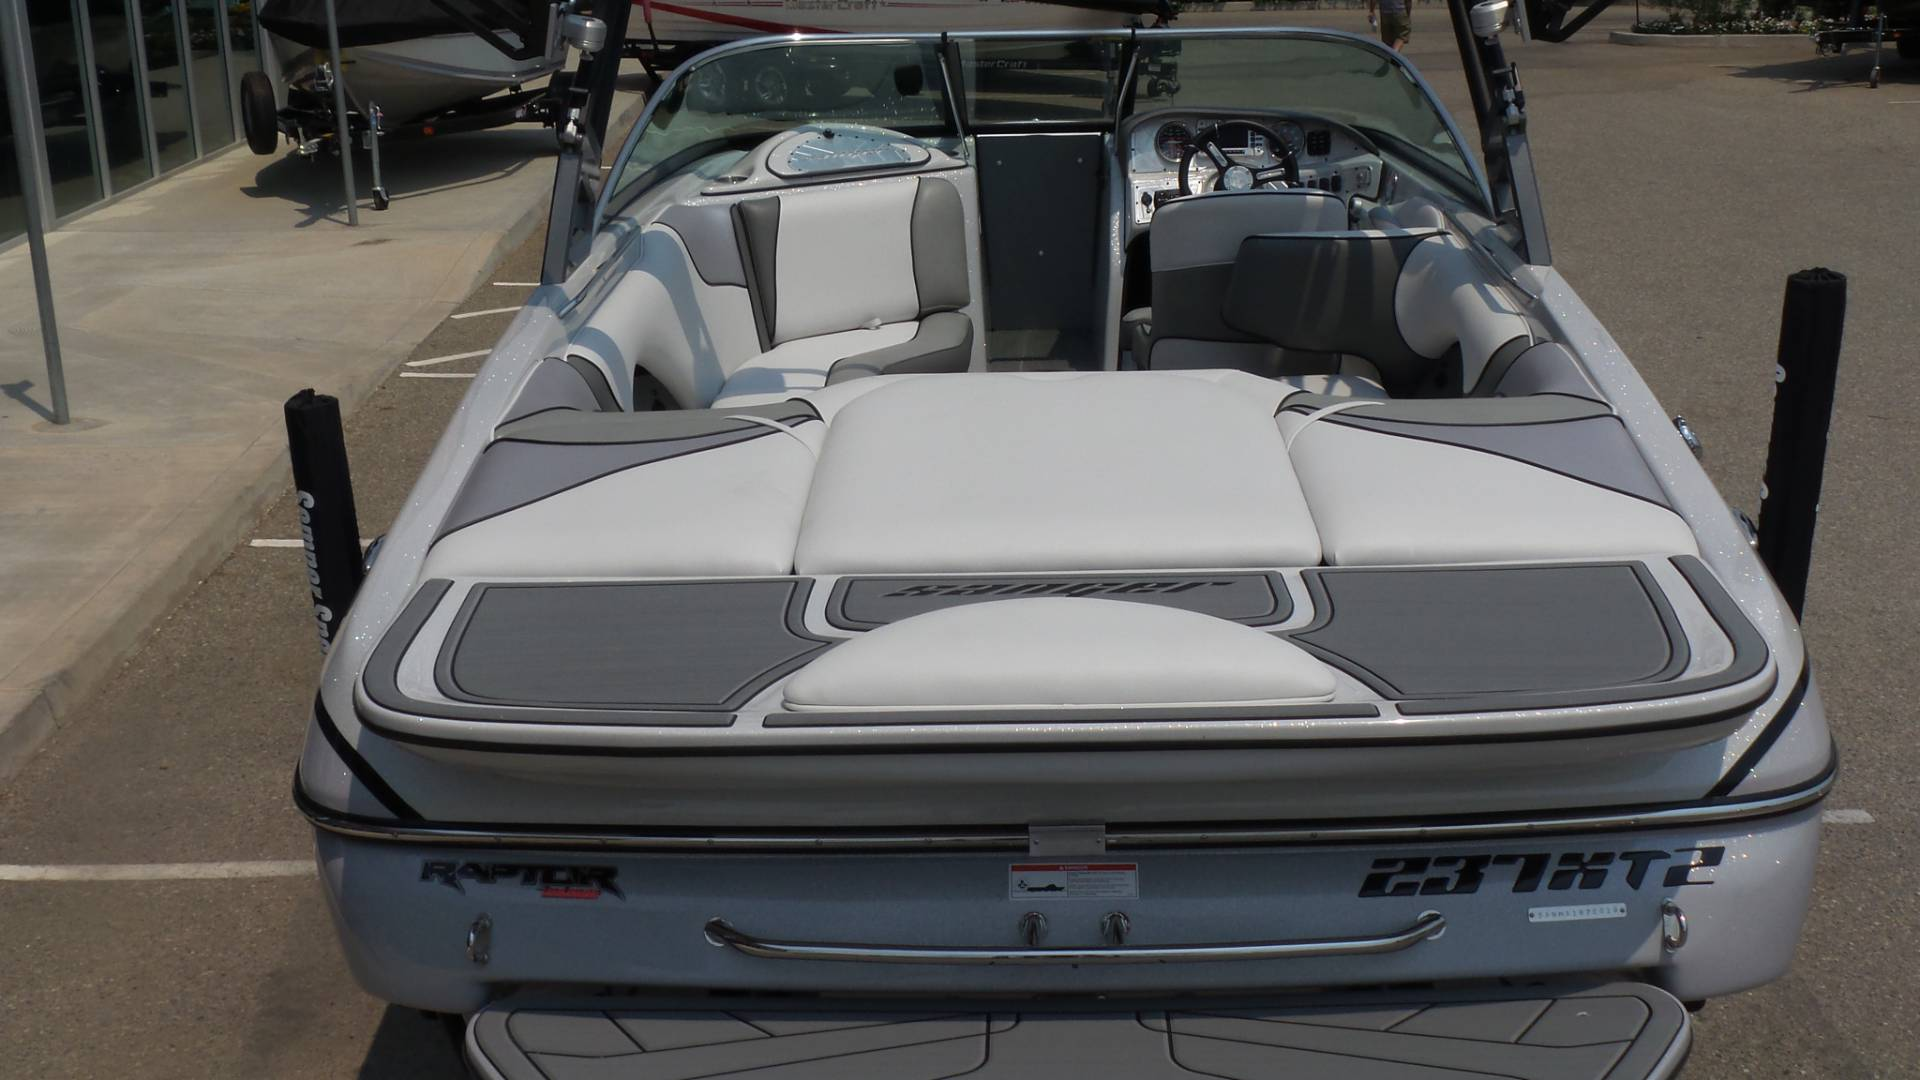 2019 Sanger Boats V-237 XTZ in Madera, California - Photo 9